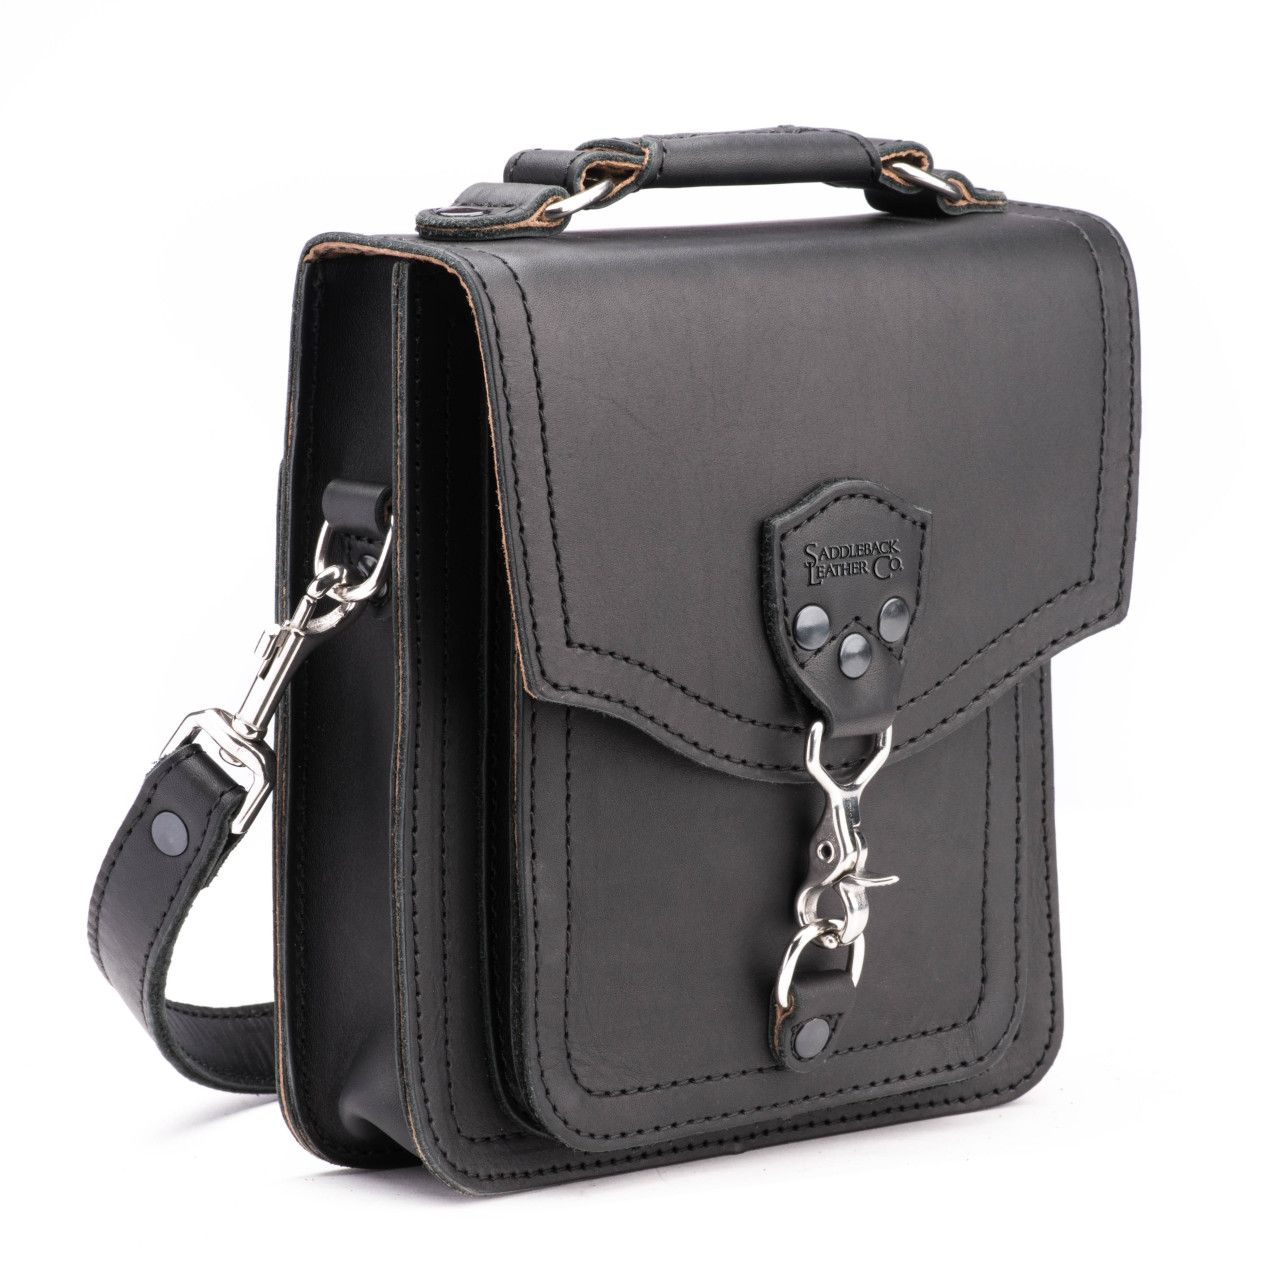 Leather front pocket pouch in the color black off center angle